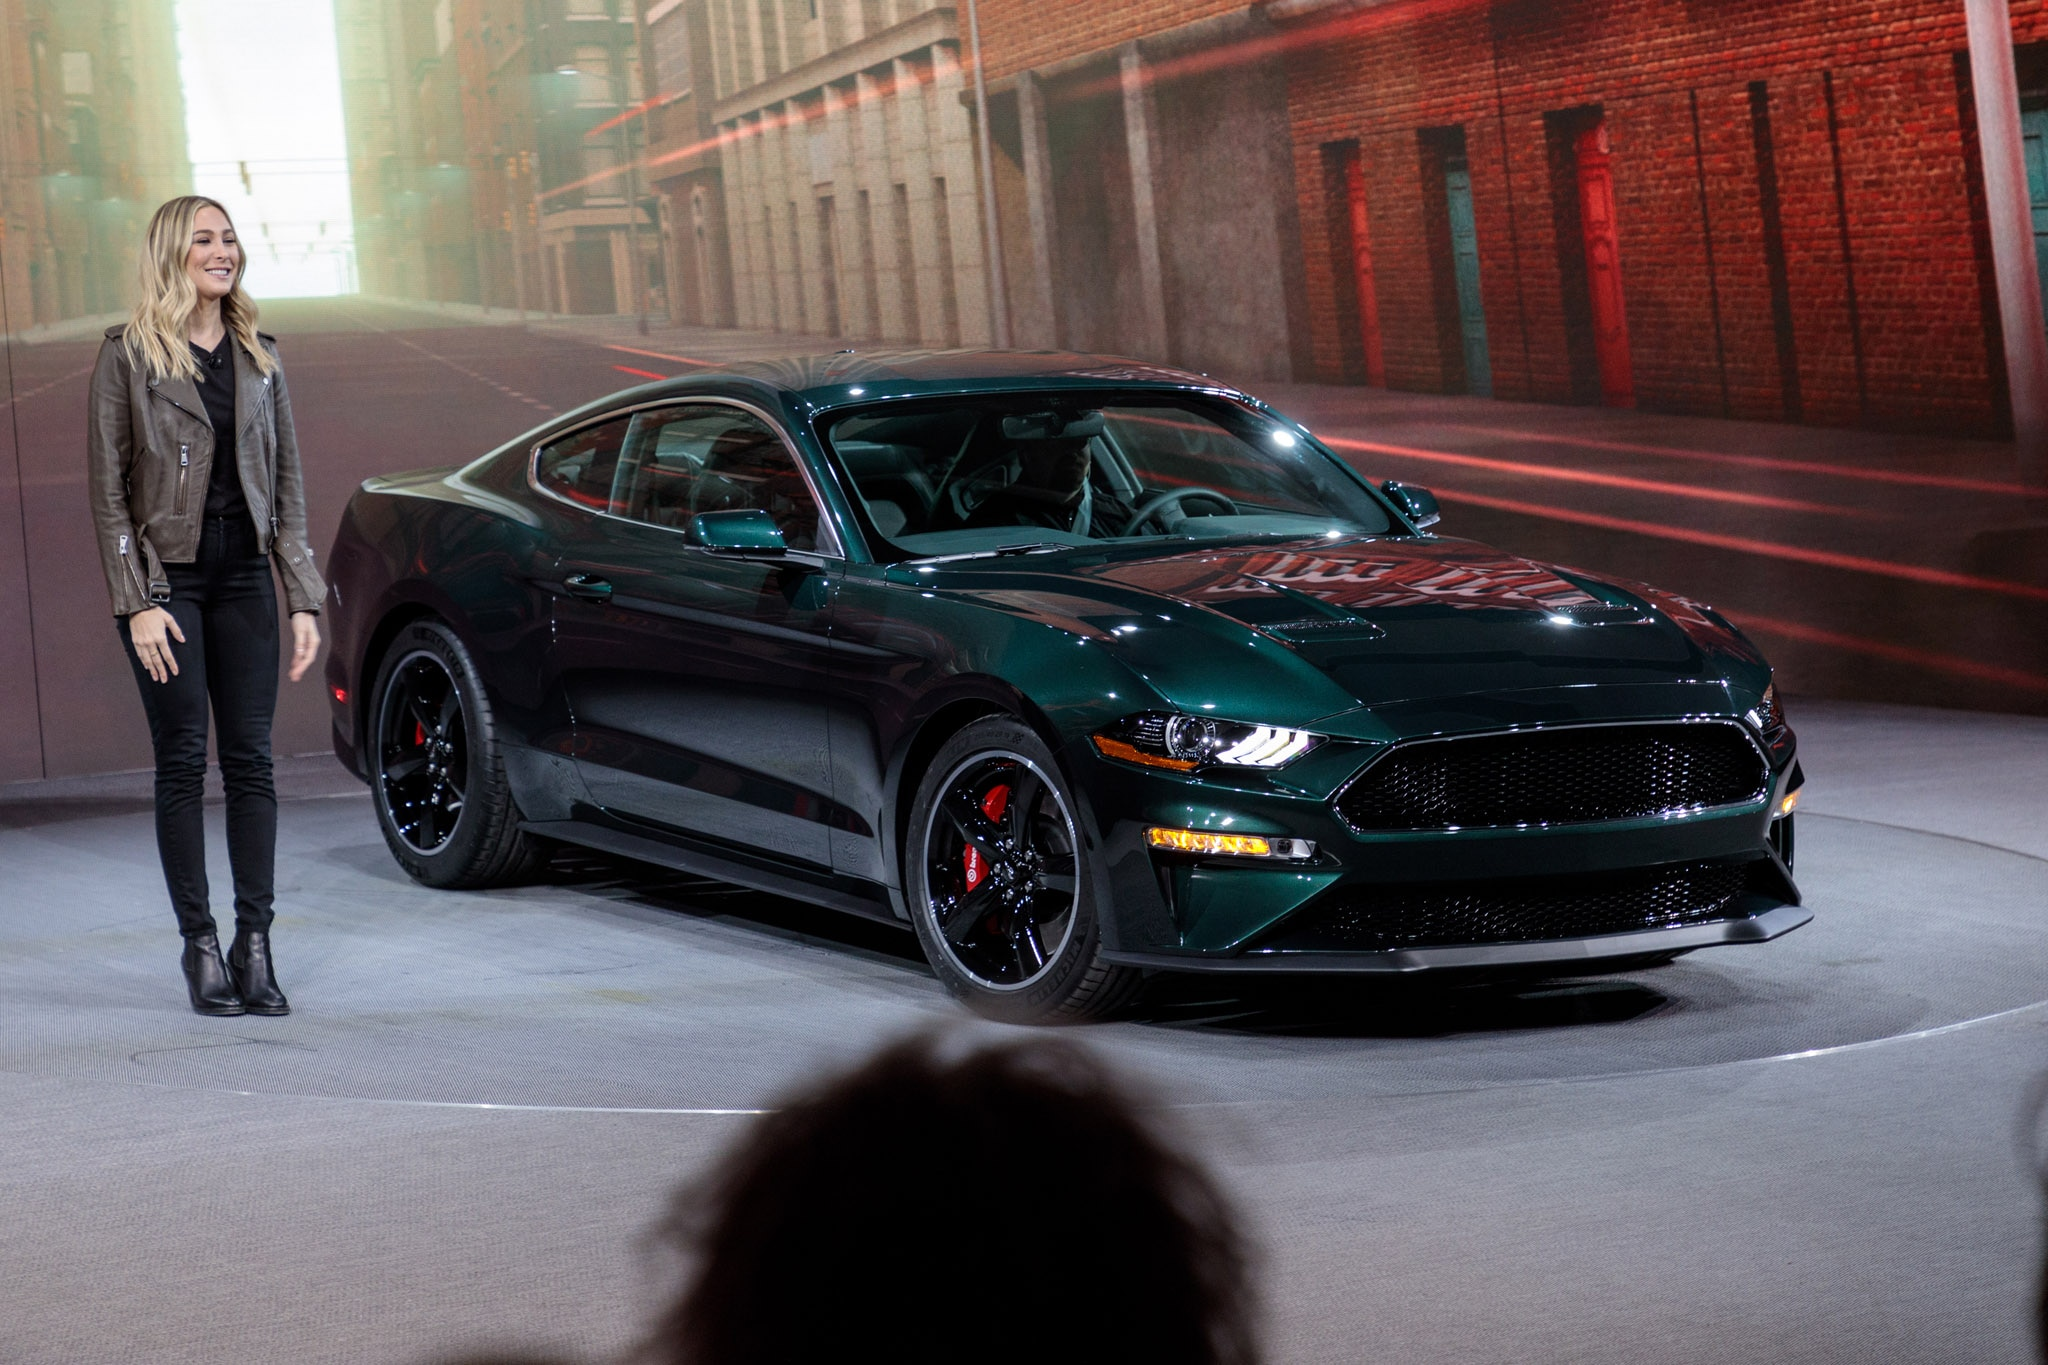 White Ford Fusion News >> Molly McQueen Drives Up in 2019 Ford Mustang Bullitt | Automobile Magazine